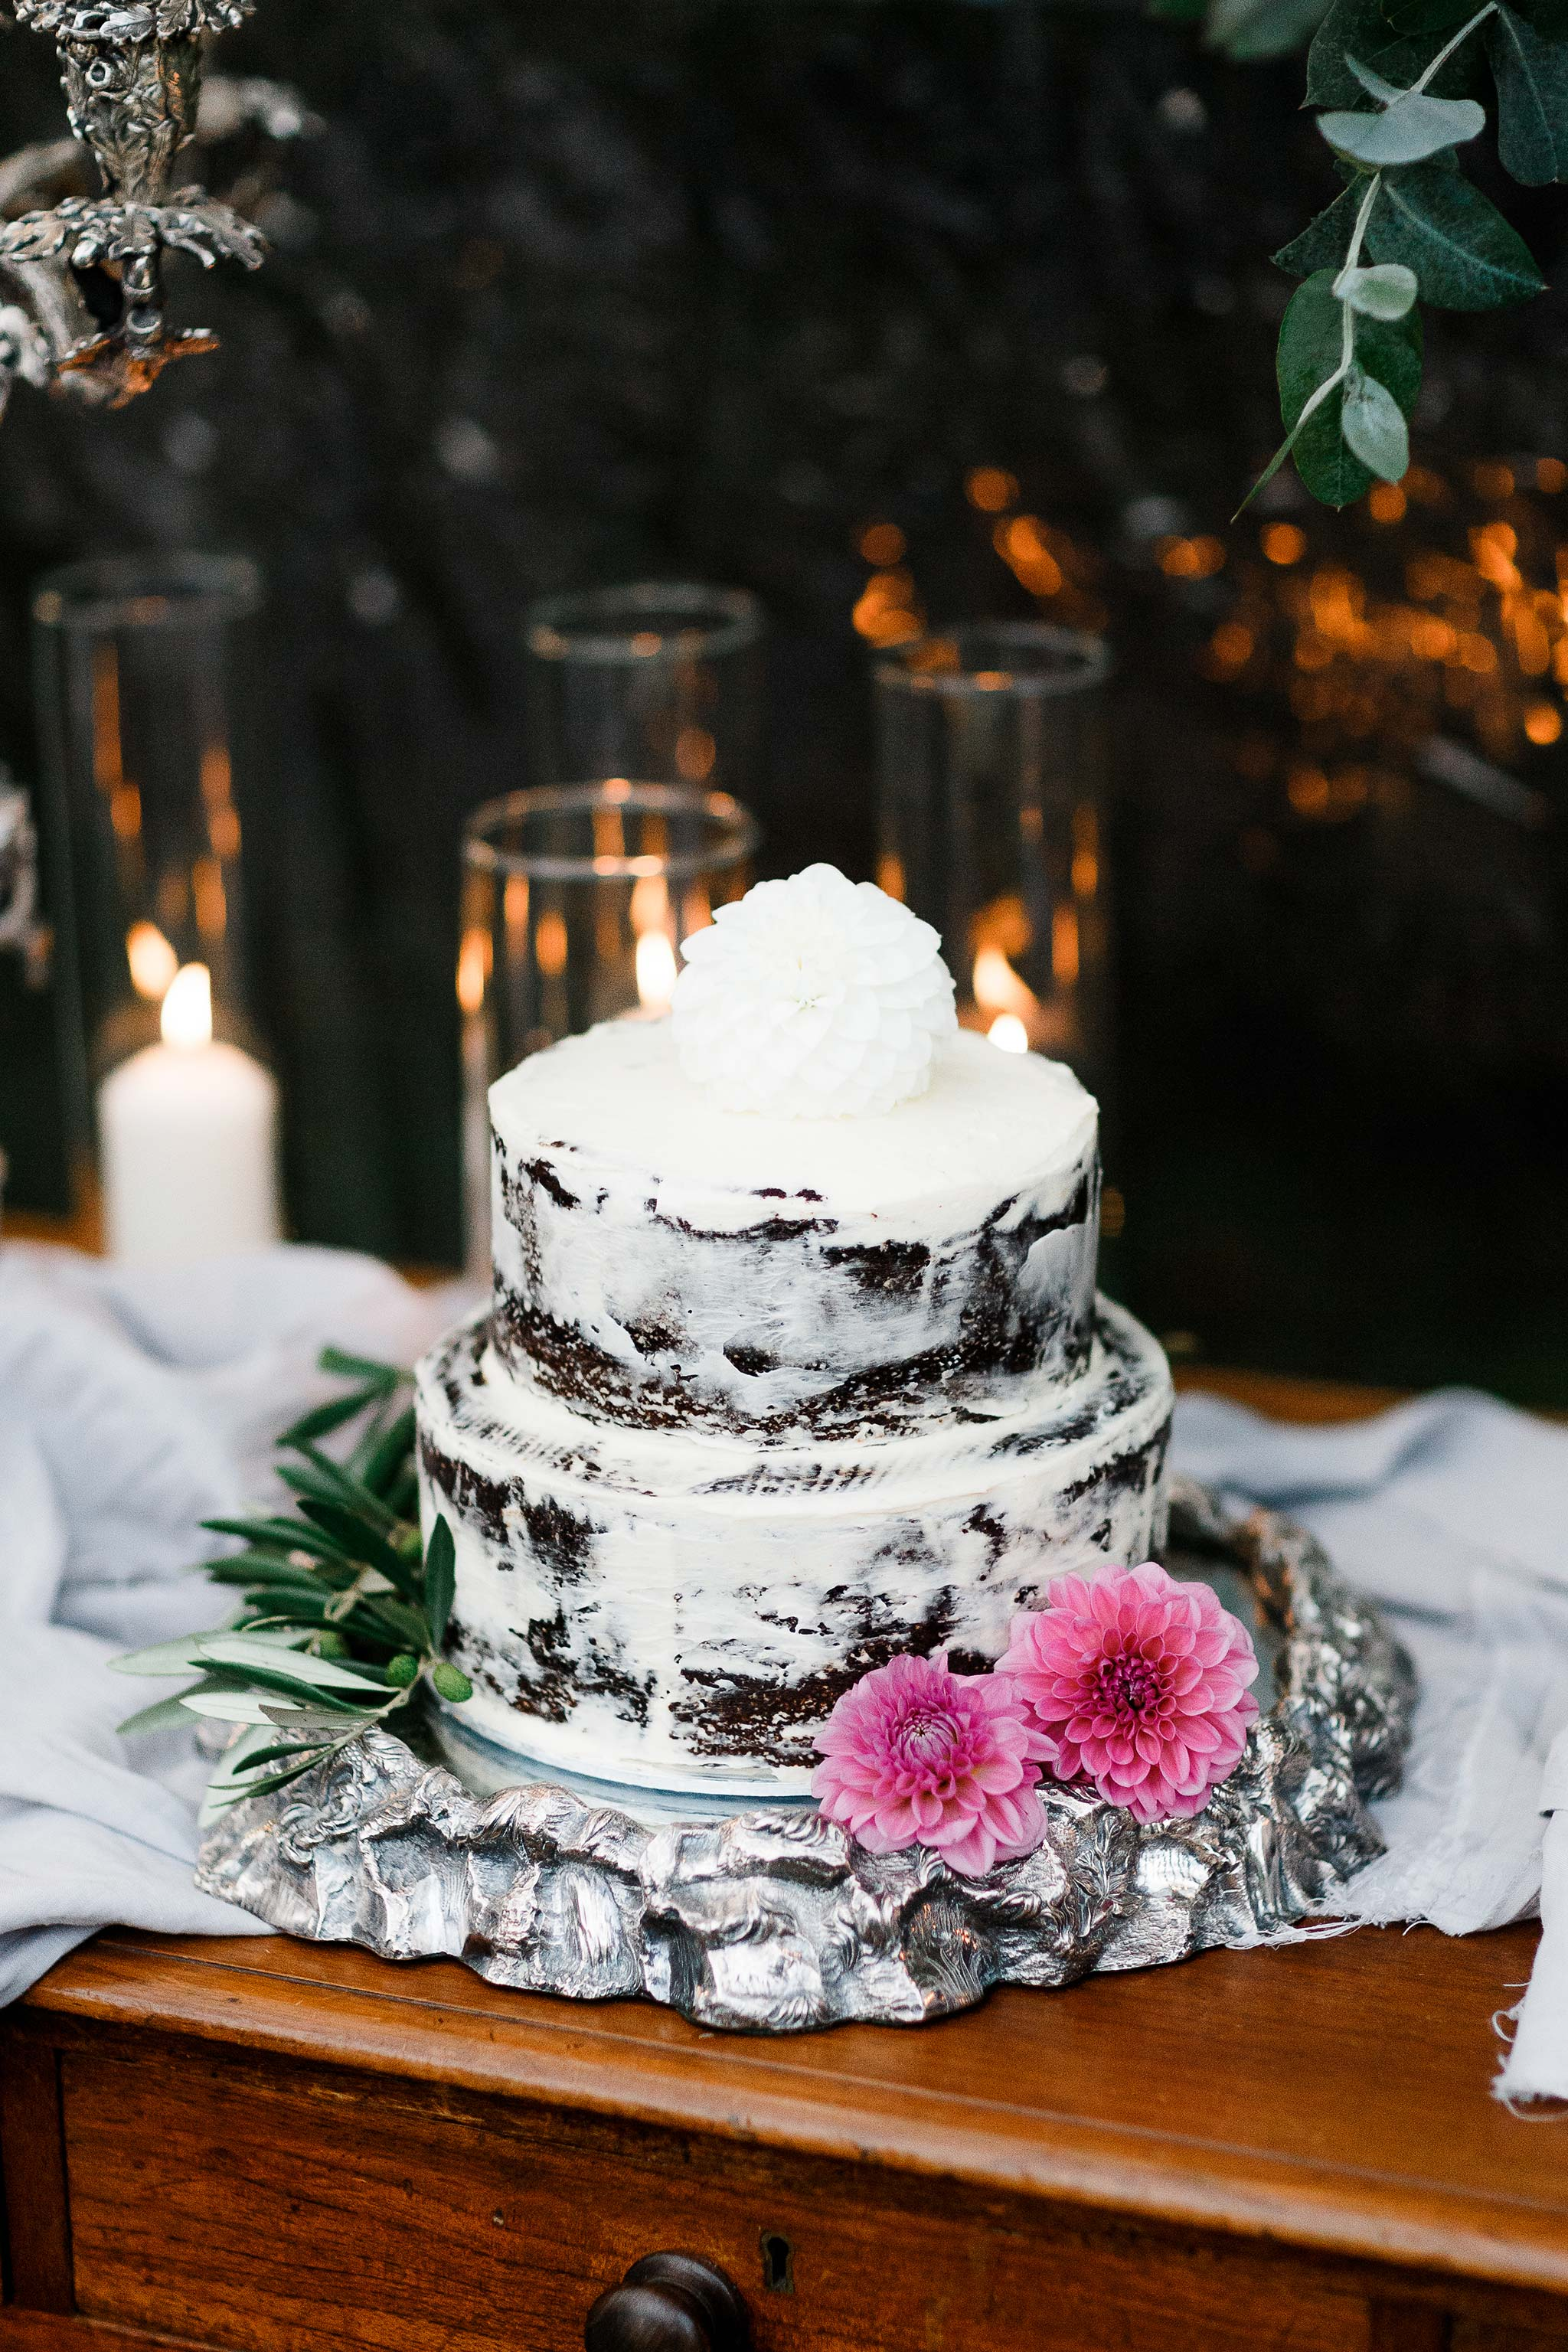 Tasmania-Davenport-Farm-Wedding-cake